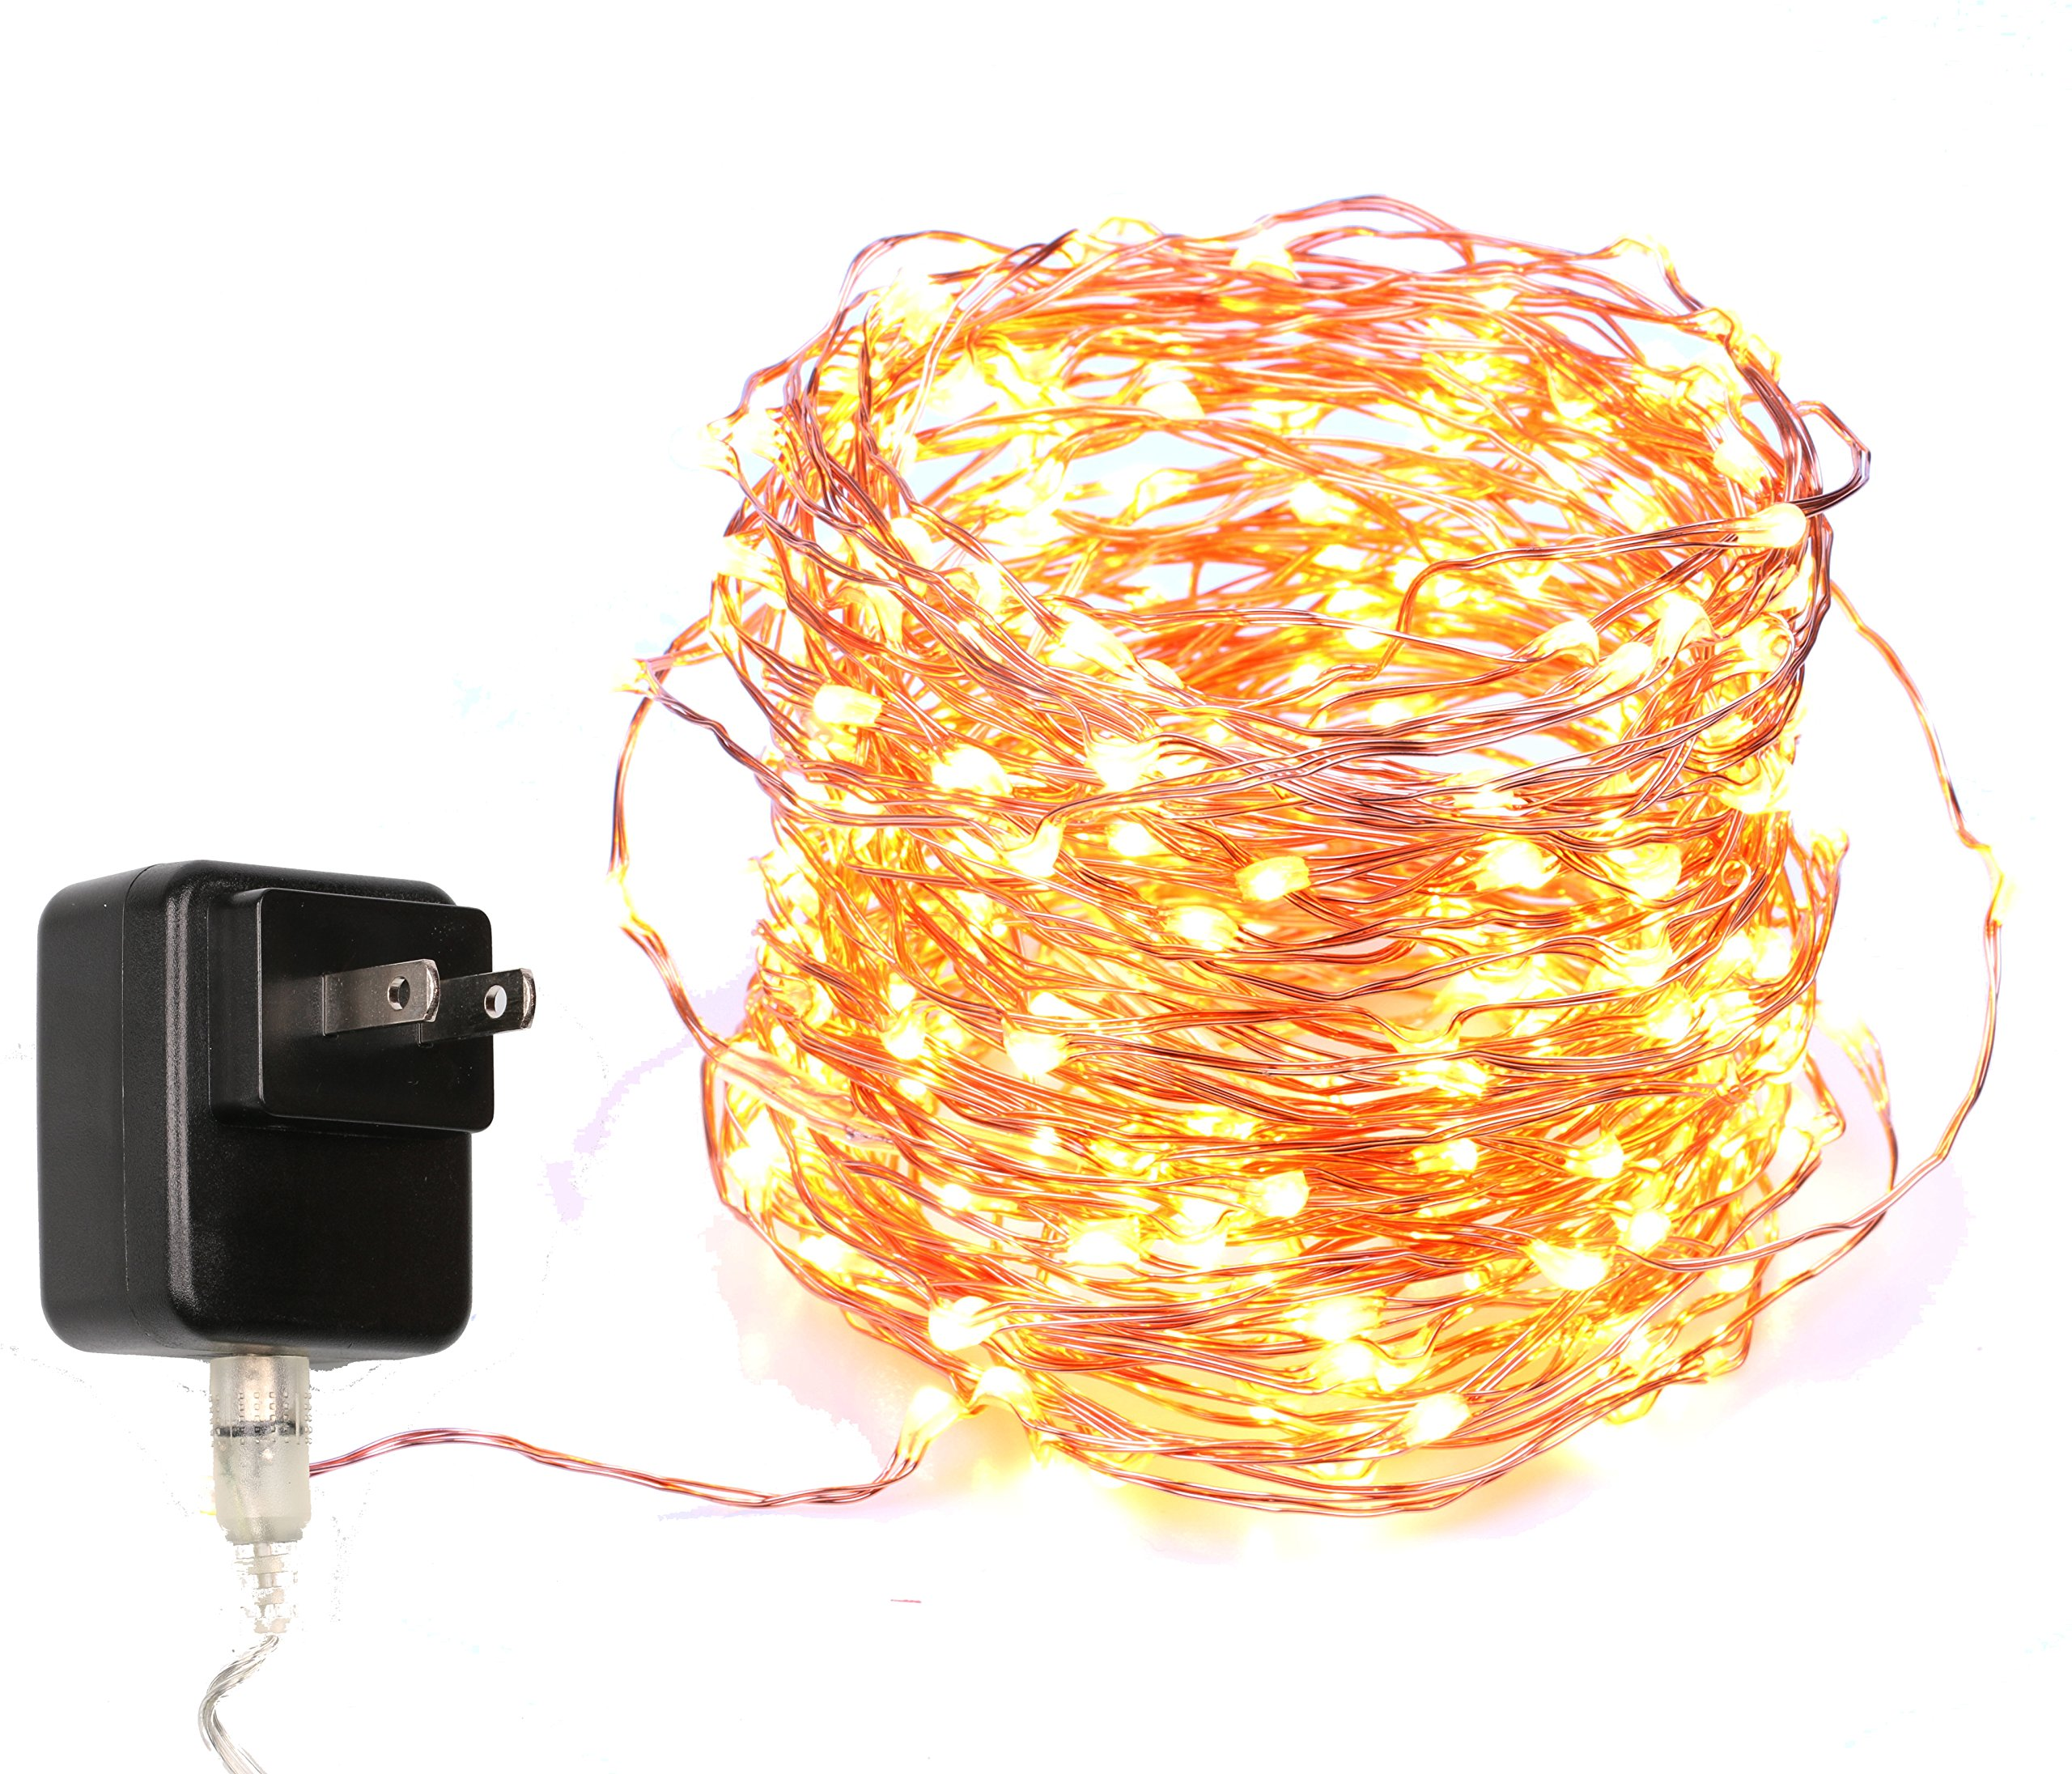 40 Feet Starry String Lights Warm White Color LED's on a Flexible Copper Wire - LED String Light with 120 Individually Mounted LED's-UL Adaptor Included by MineTom